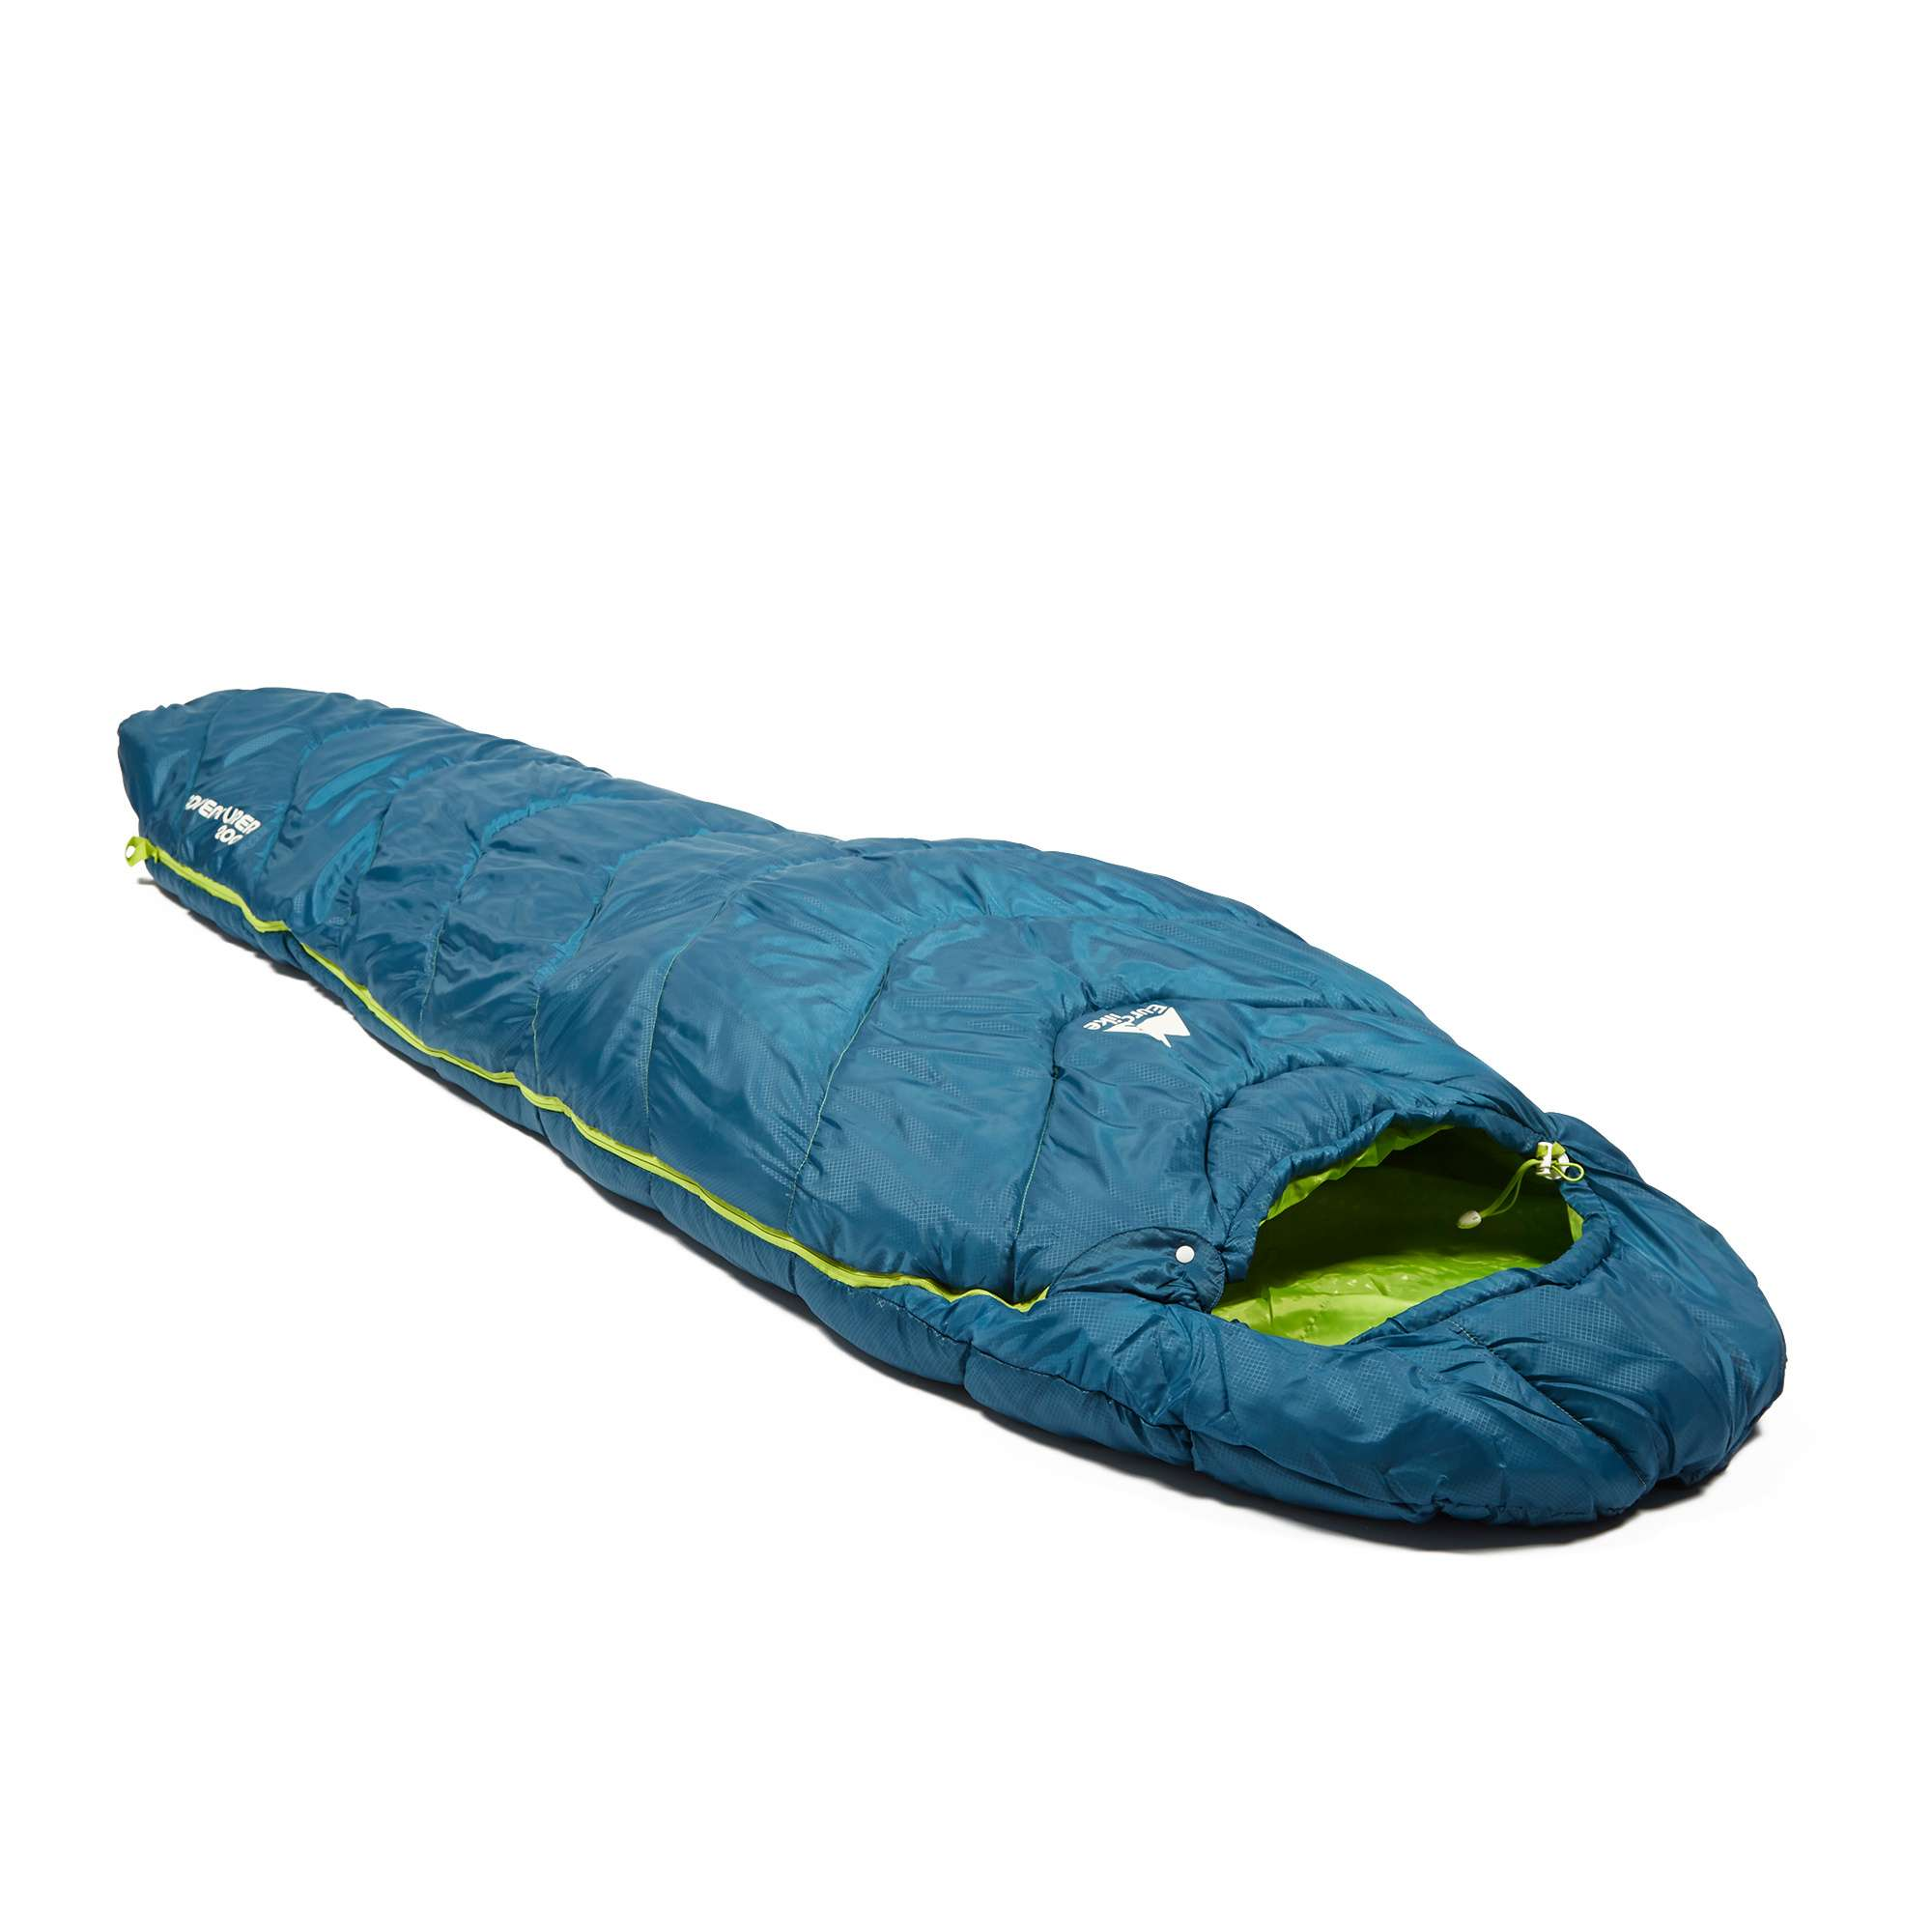 EUROHIKE Adventurer 200 Sleeping Bag